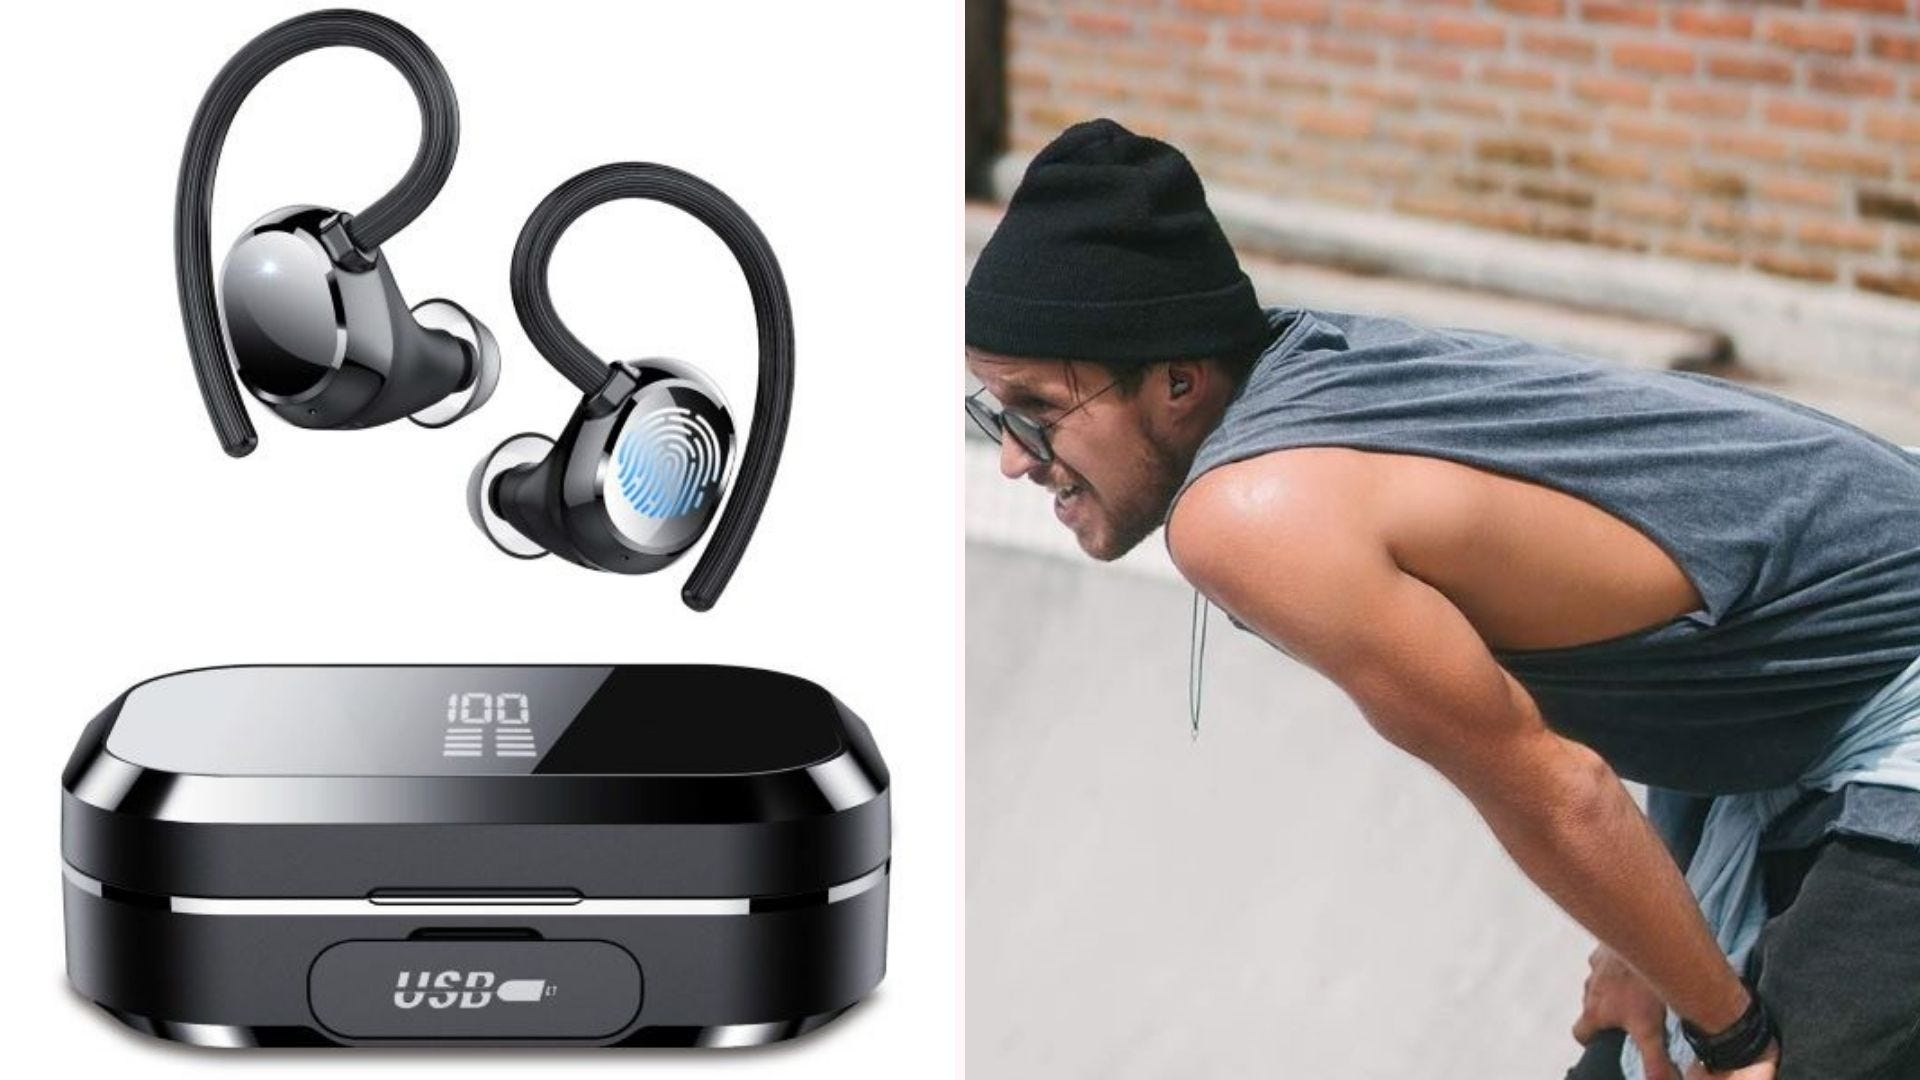 Tiksounds True Wireless Earbuds and case, and a man wearing them.